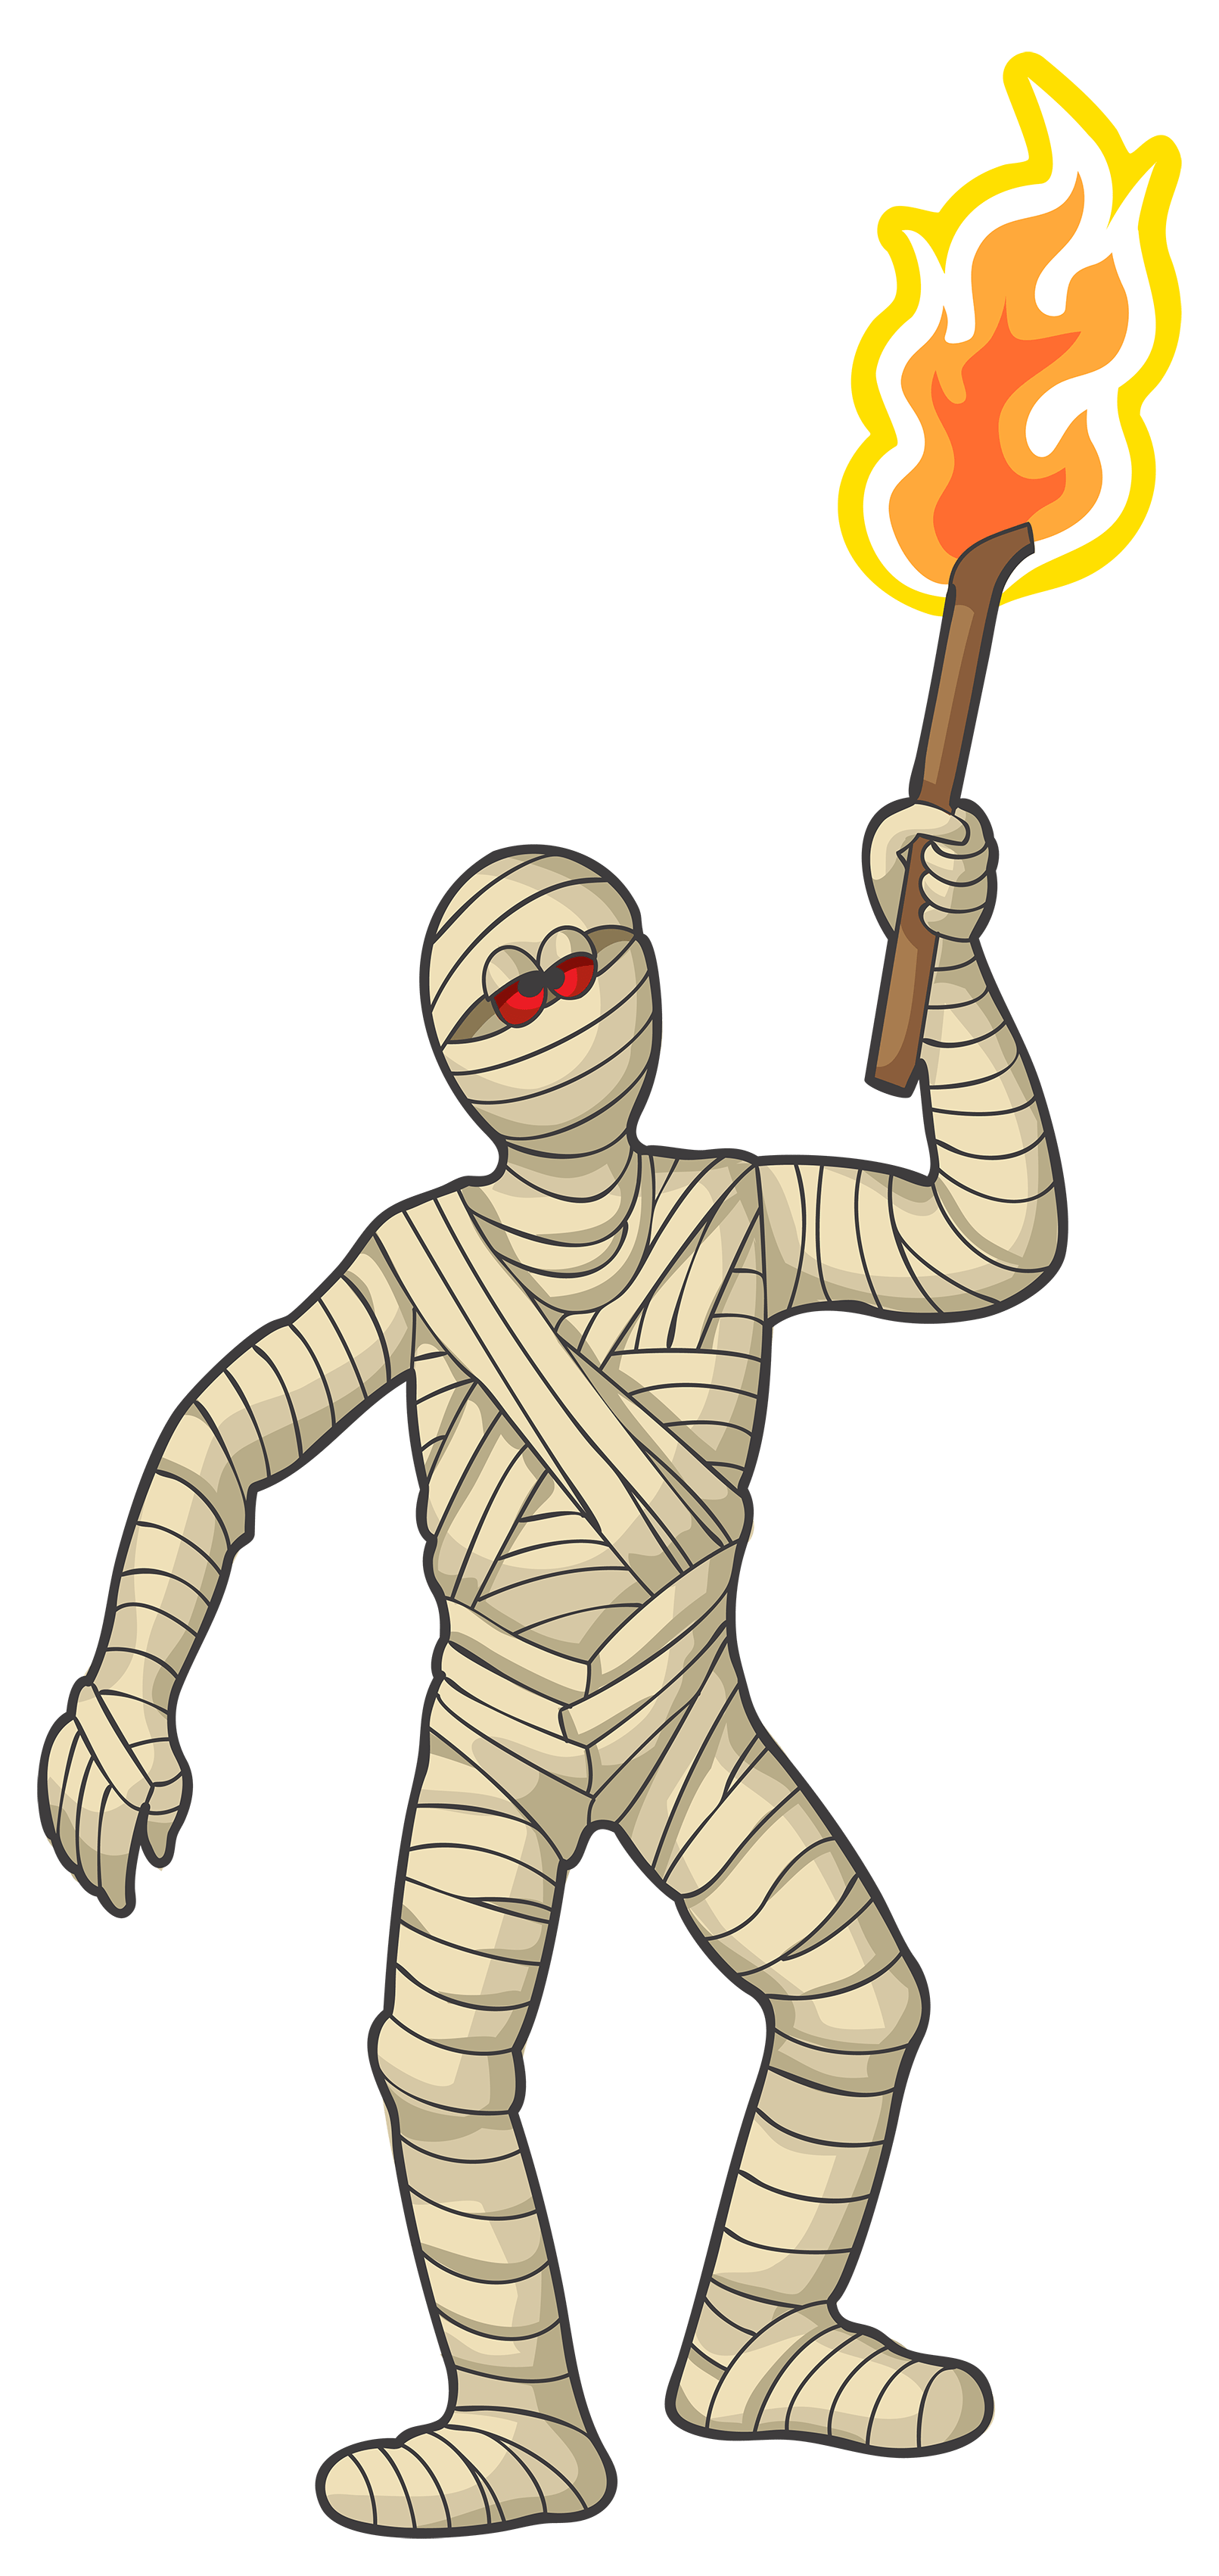 Mummy transparent. With torch png stickpng